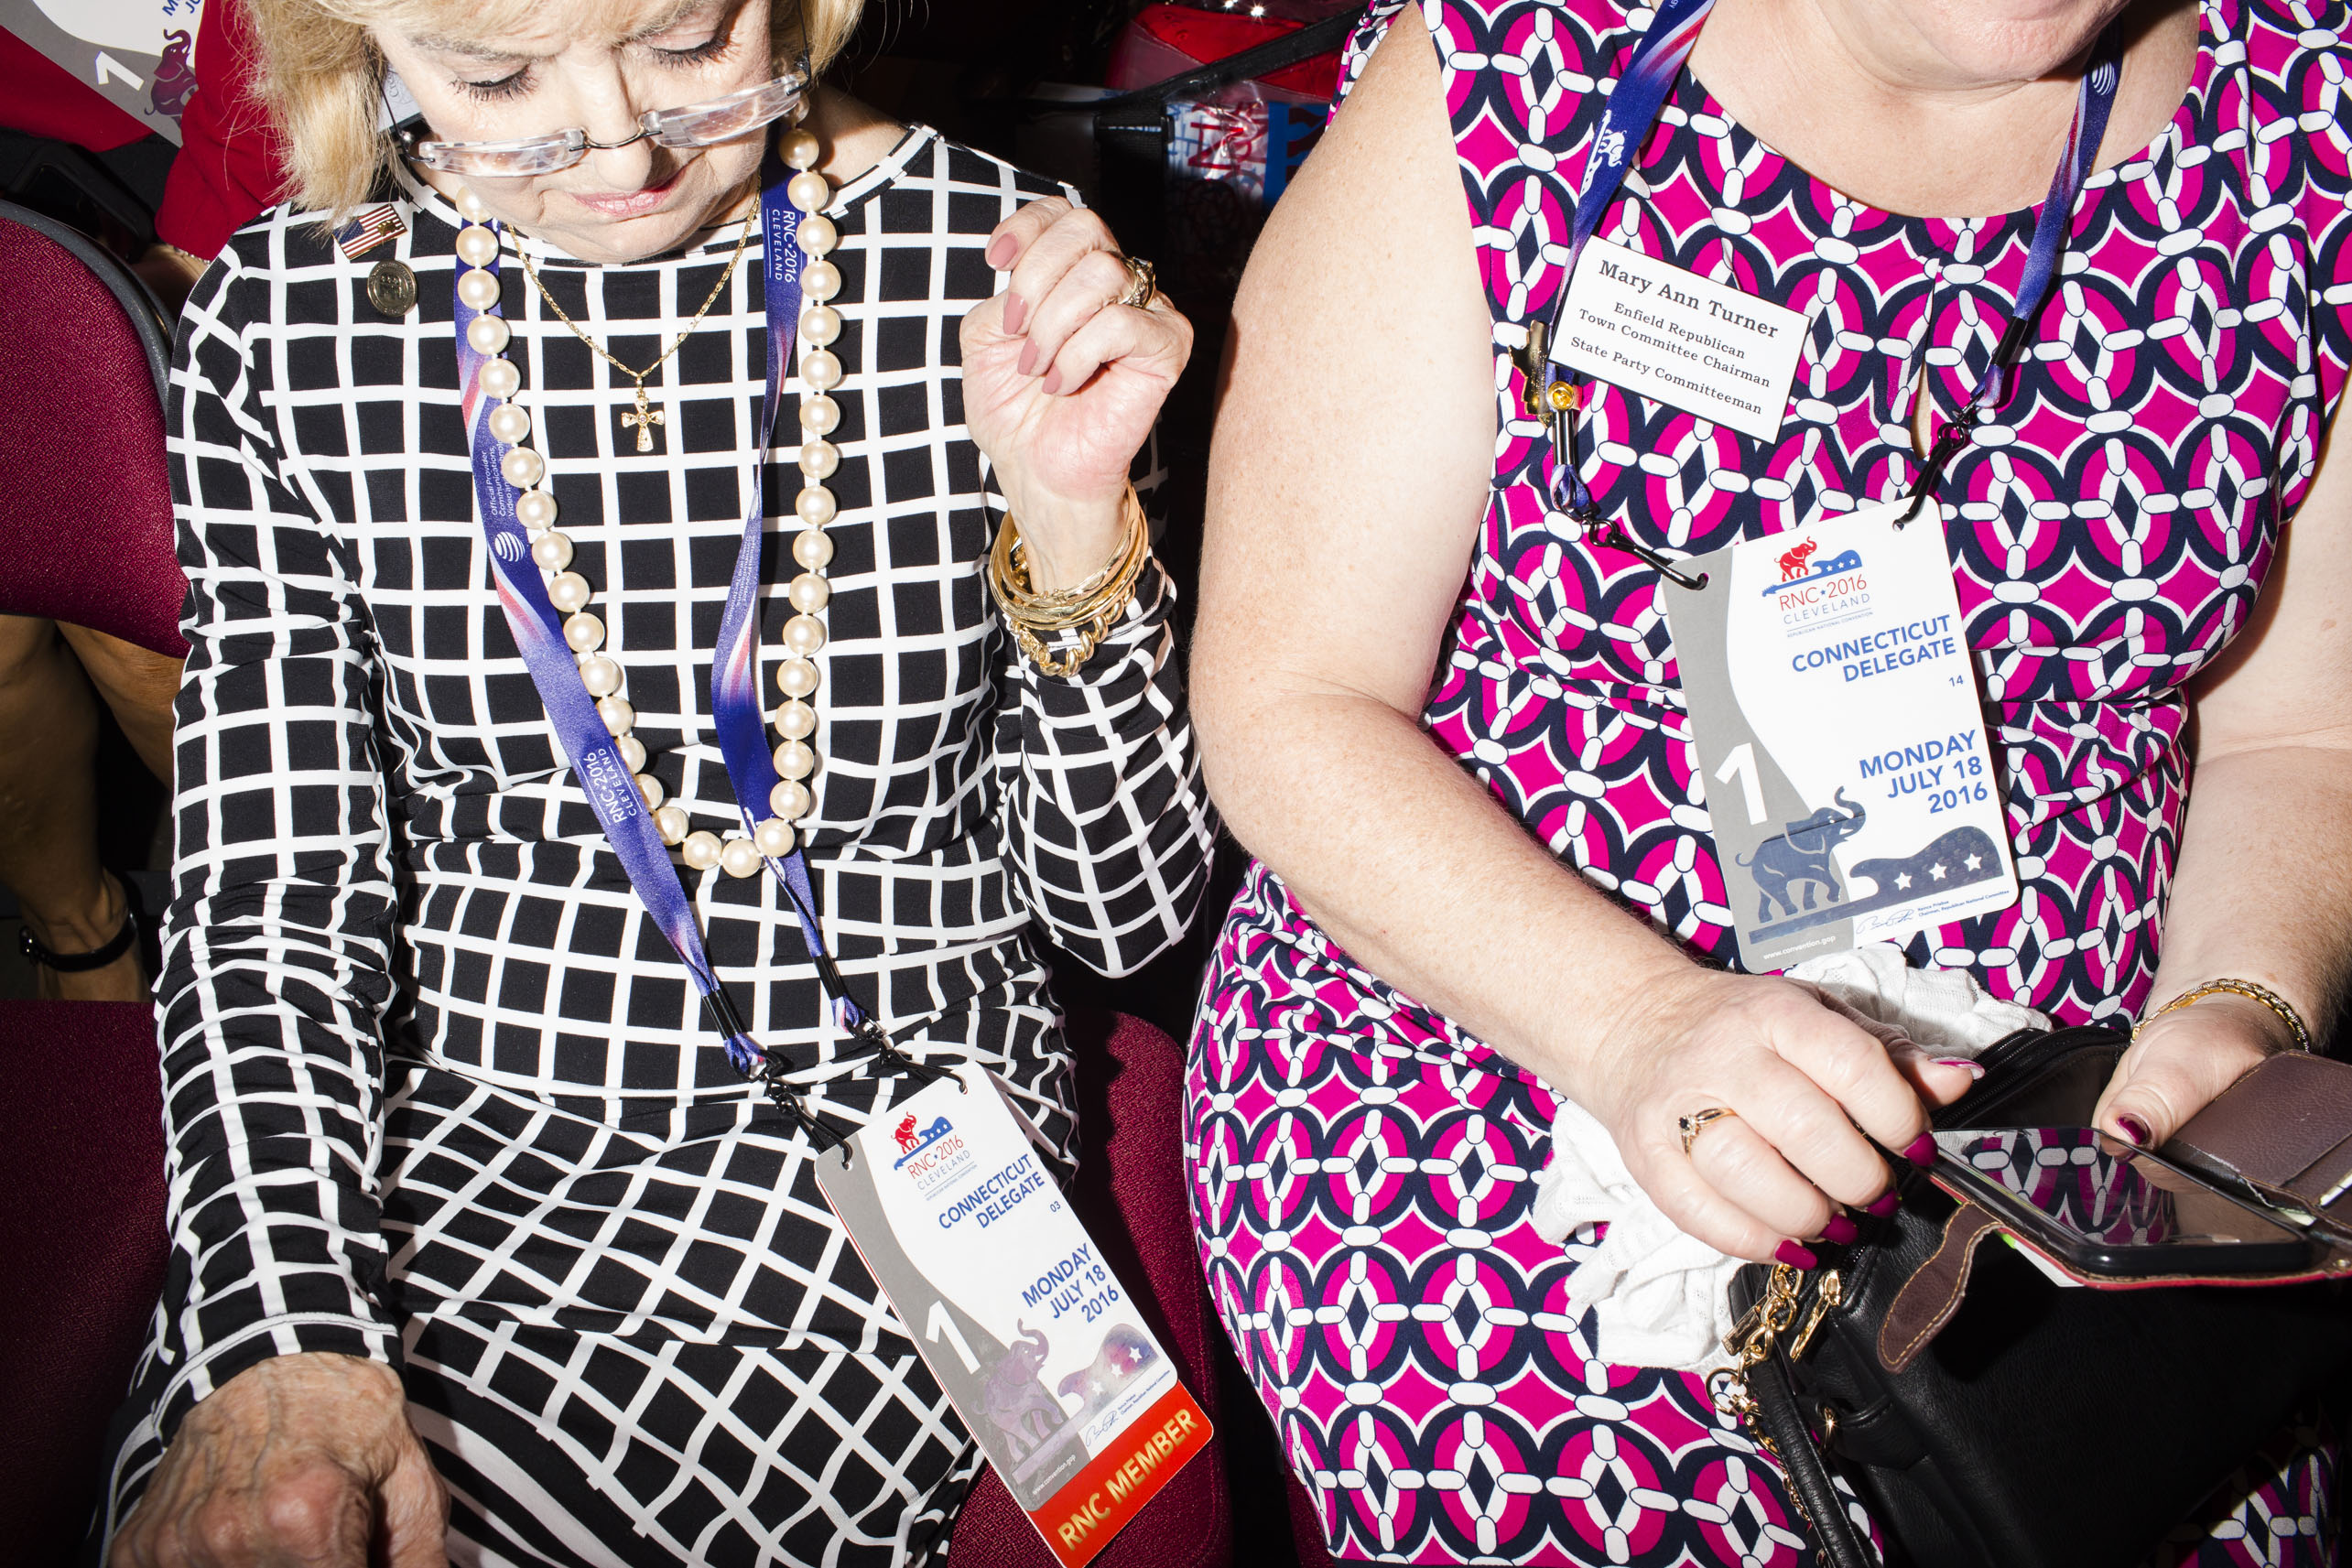 Bold patterns and big beads on the floor of the 2016 Republican National Convention on Monday, July 18, 2016, in Cleveland.